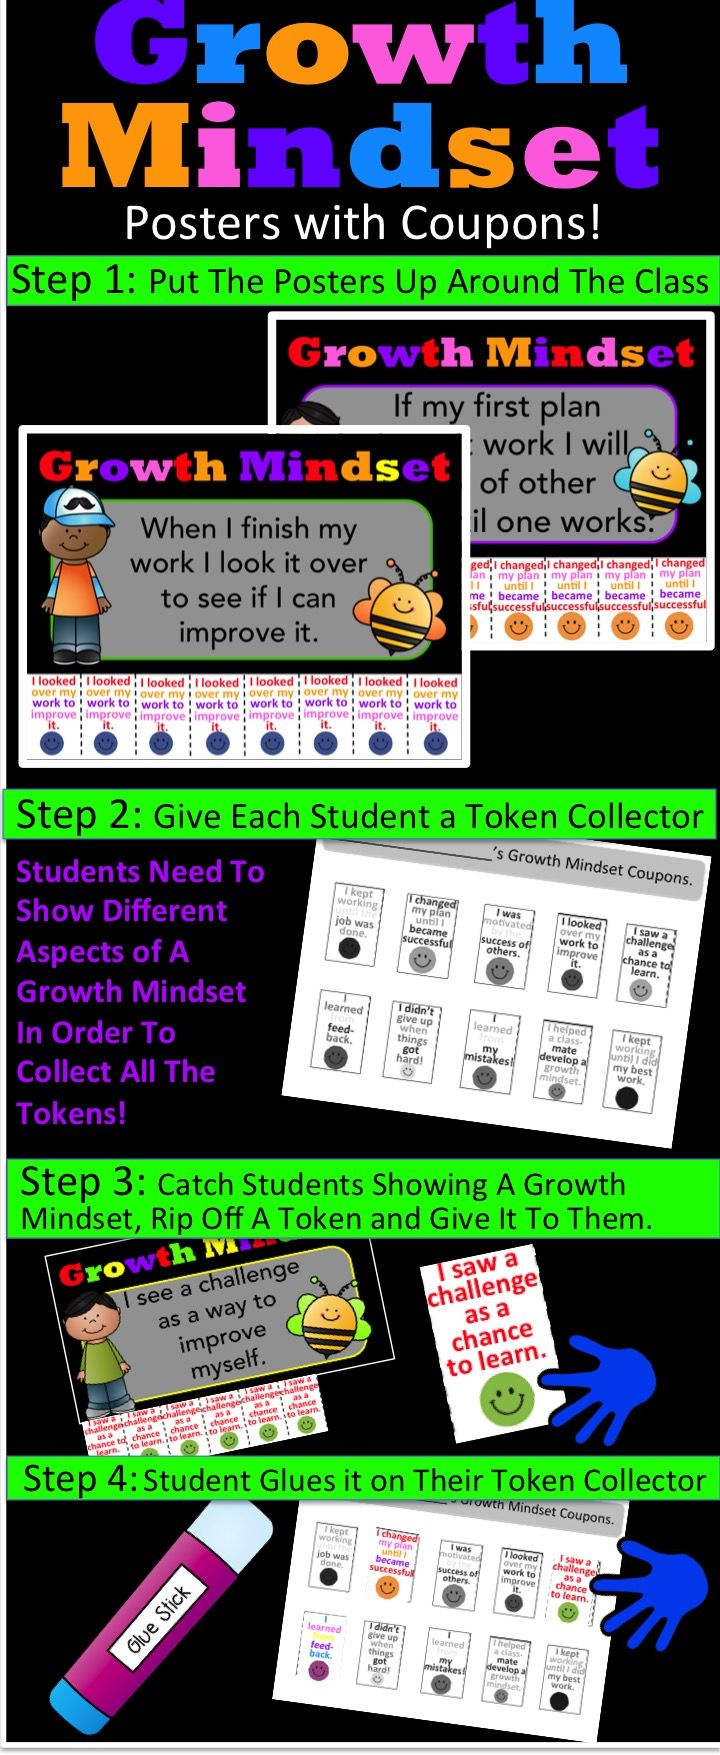 Growth Mindset Poster: Growth Mindset Reward System - Catch Students Being Good